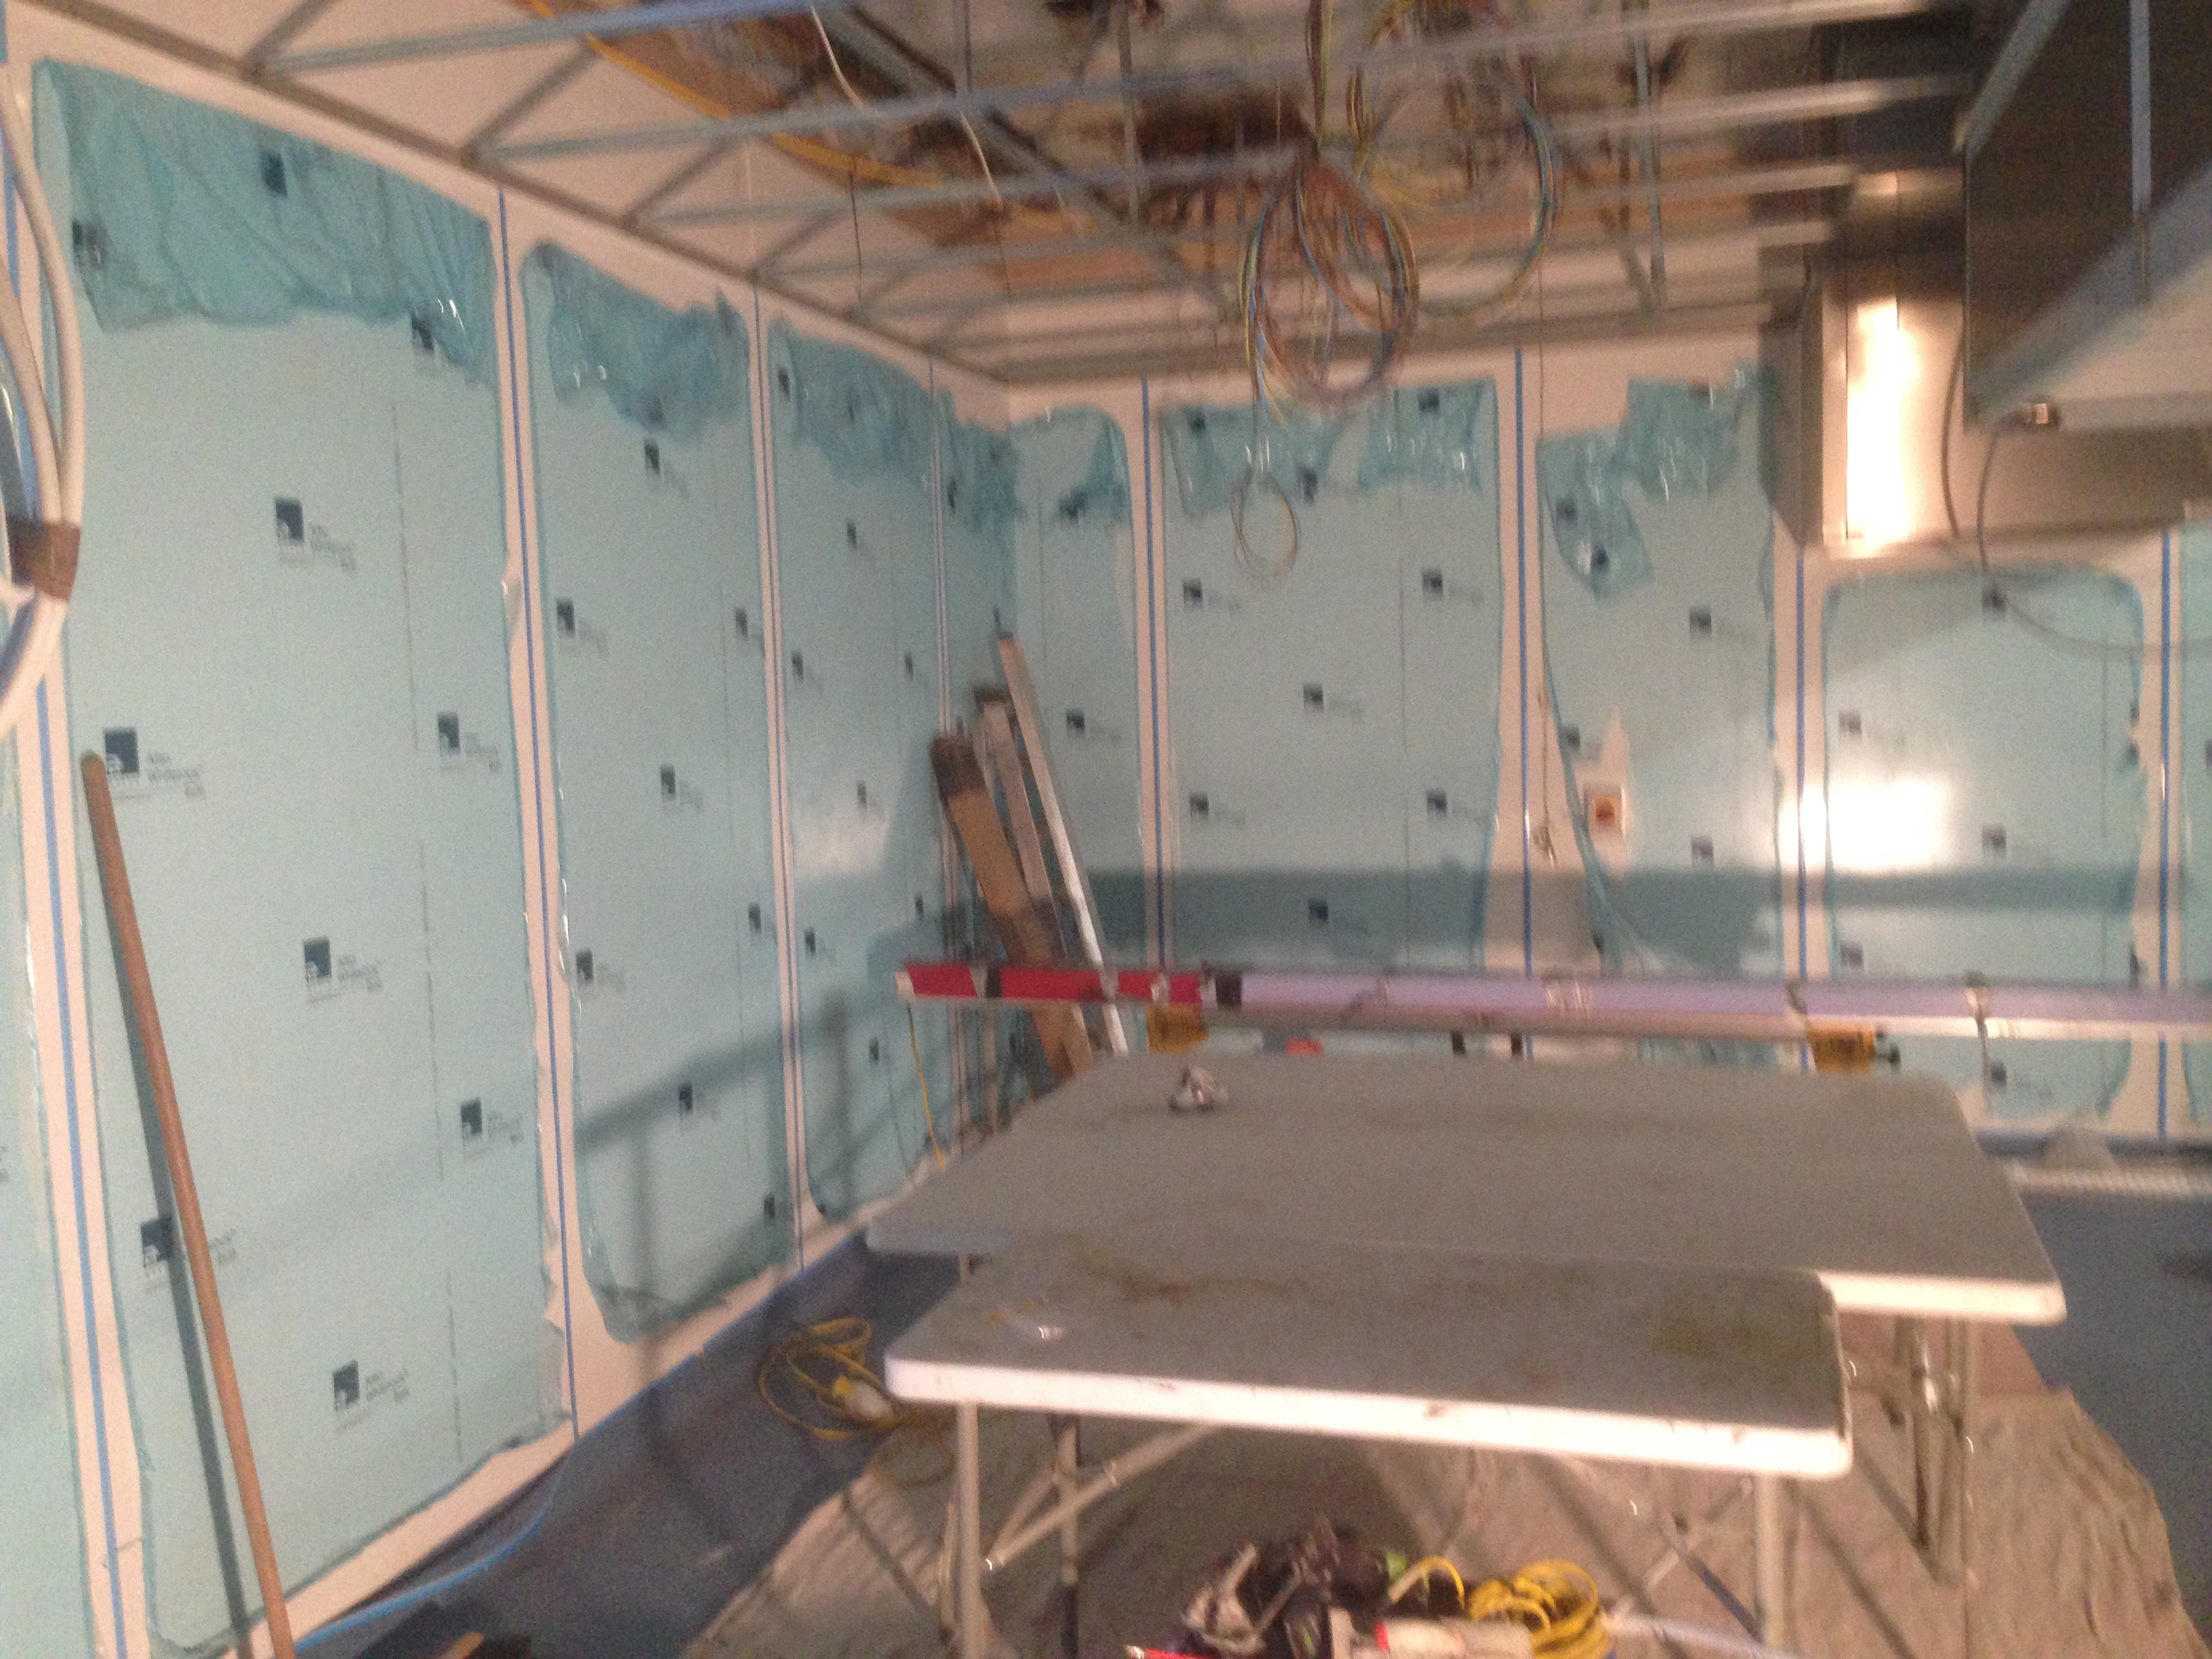 Whiterock cladding in school kitchen 1